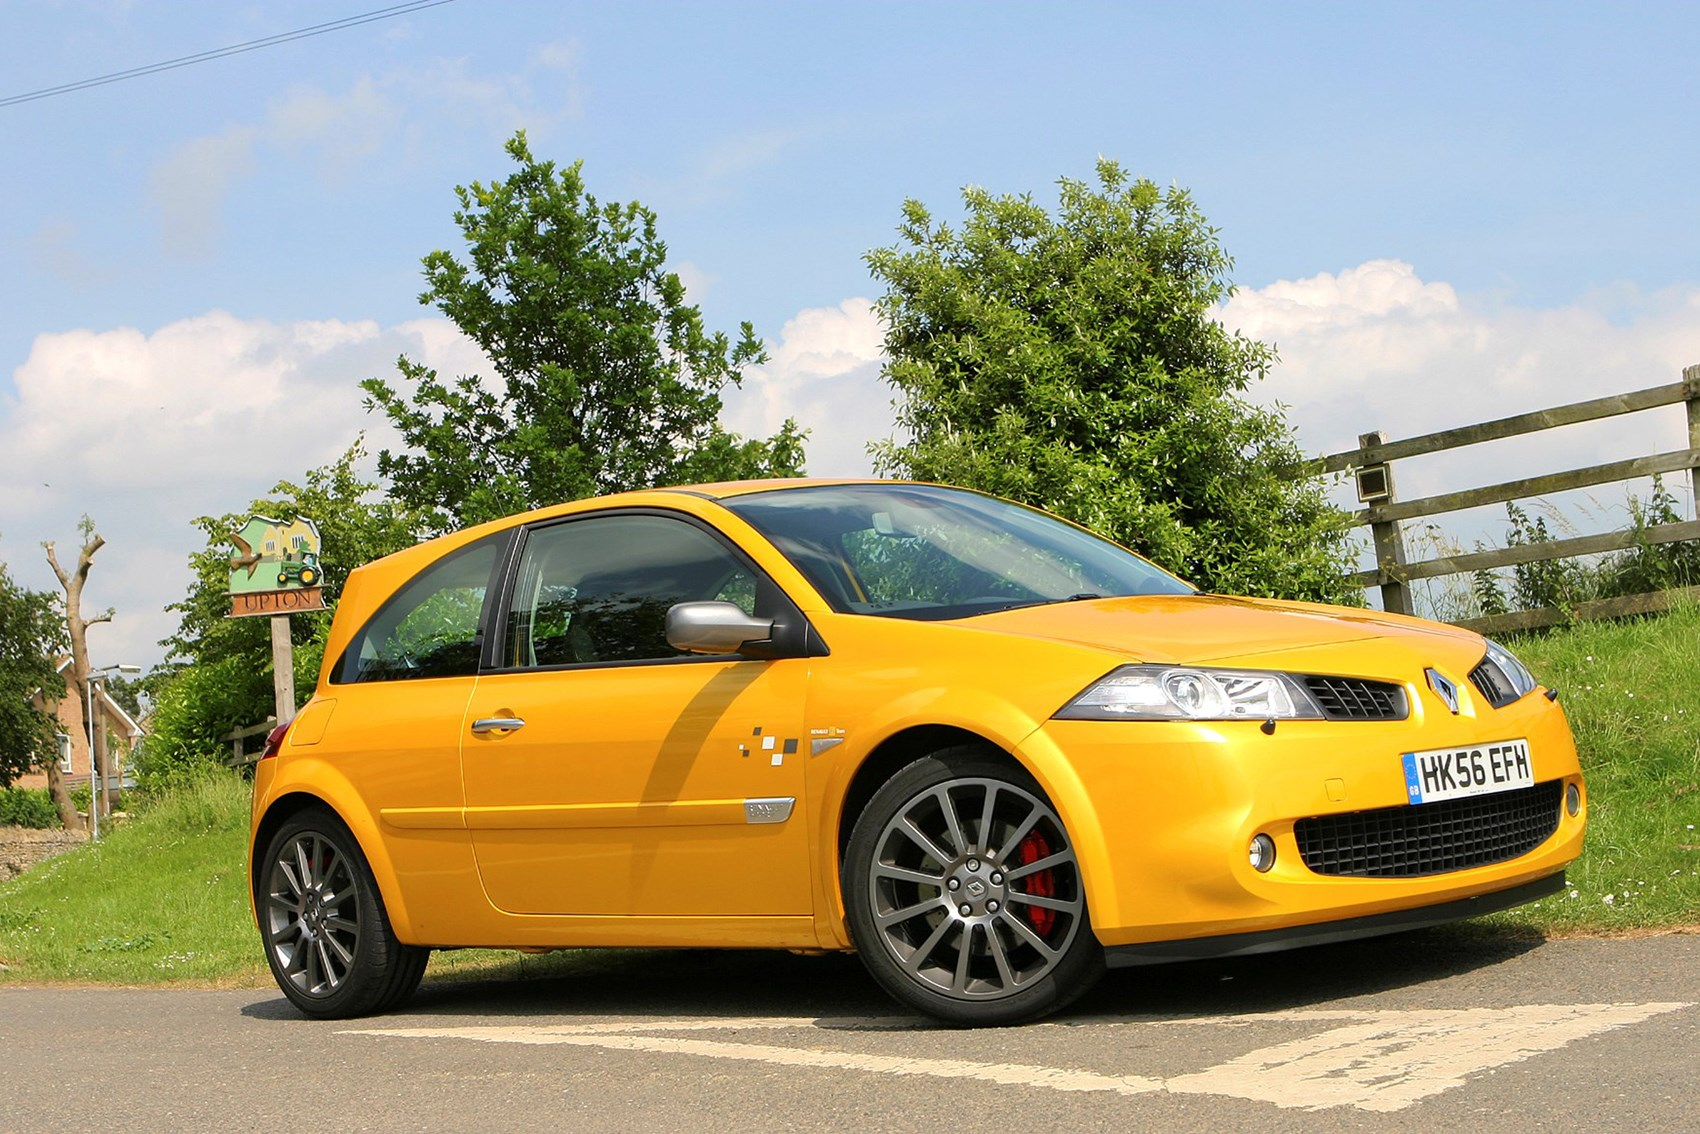 Renault Megane Renaultsport - used hatchbacks for less than £4k